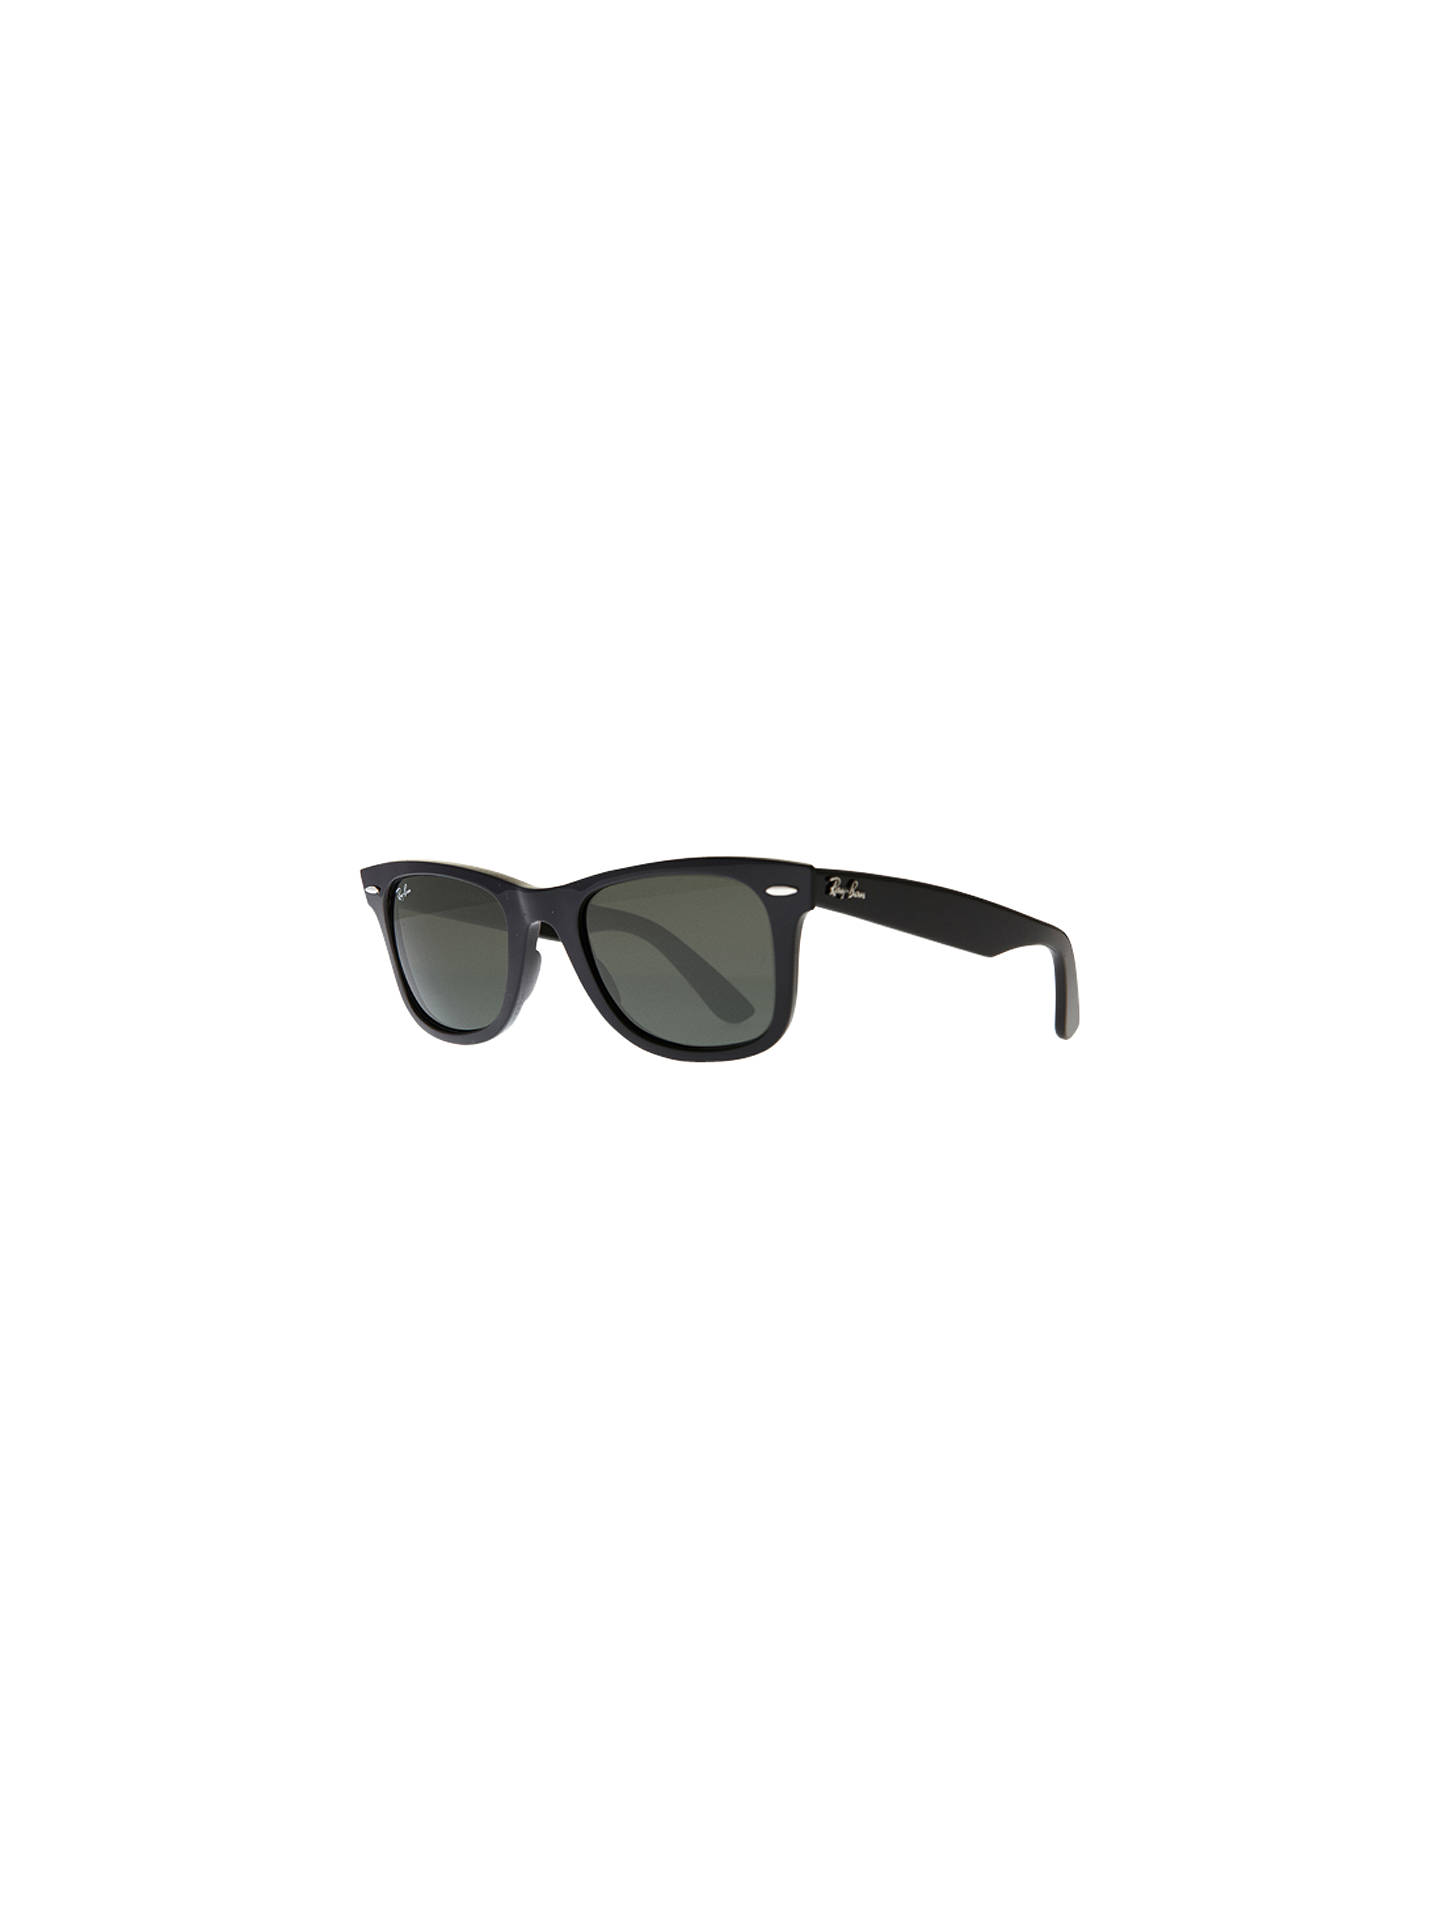 bc0bf73a9a971 Ray-Ban RB2140 Original Wayfarer Sunglasses at John Lewis   Partners